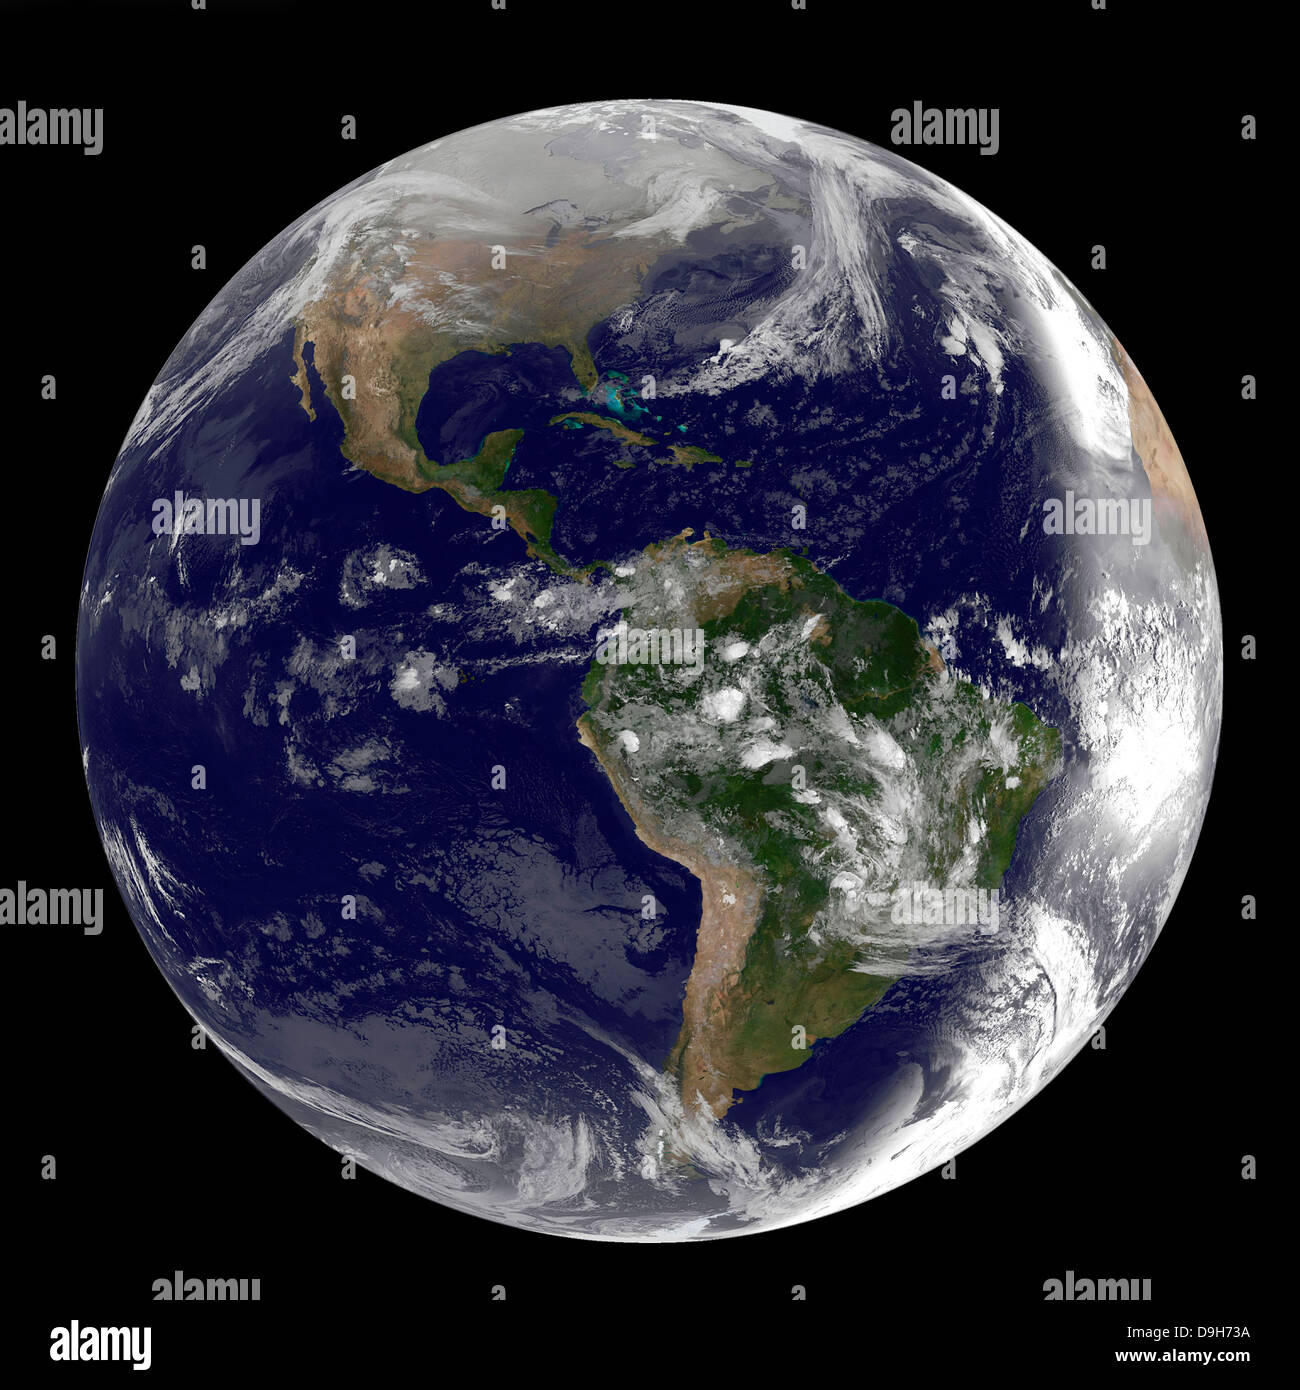 Full Earth showing North and South America on March 2, 2010. - Stock Image